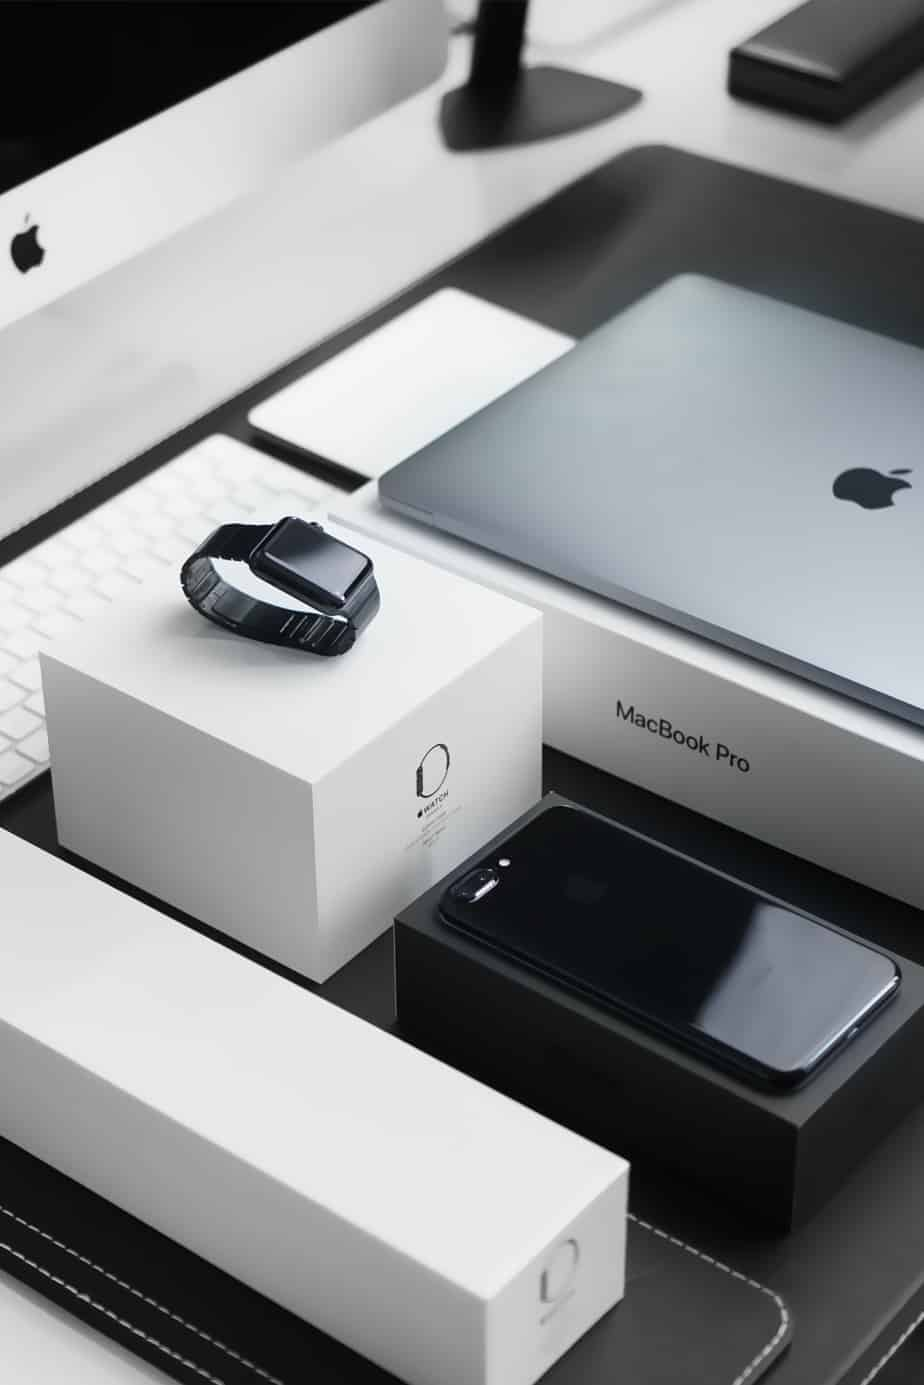 Apple Shop - Parts - Repairs - Upgrades - Replacements - Accessories - NiwTech